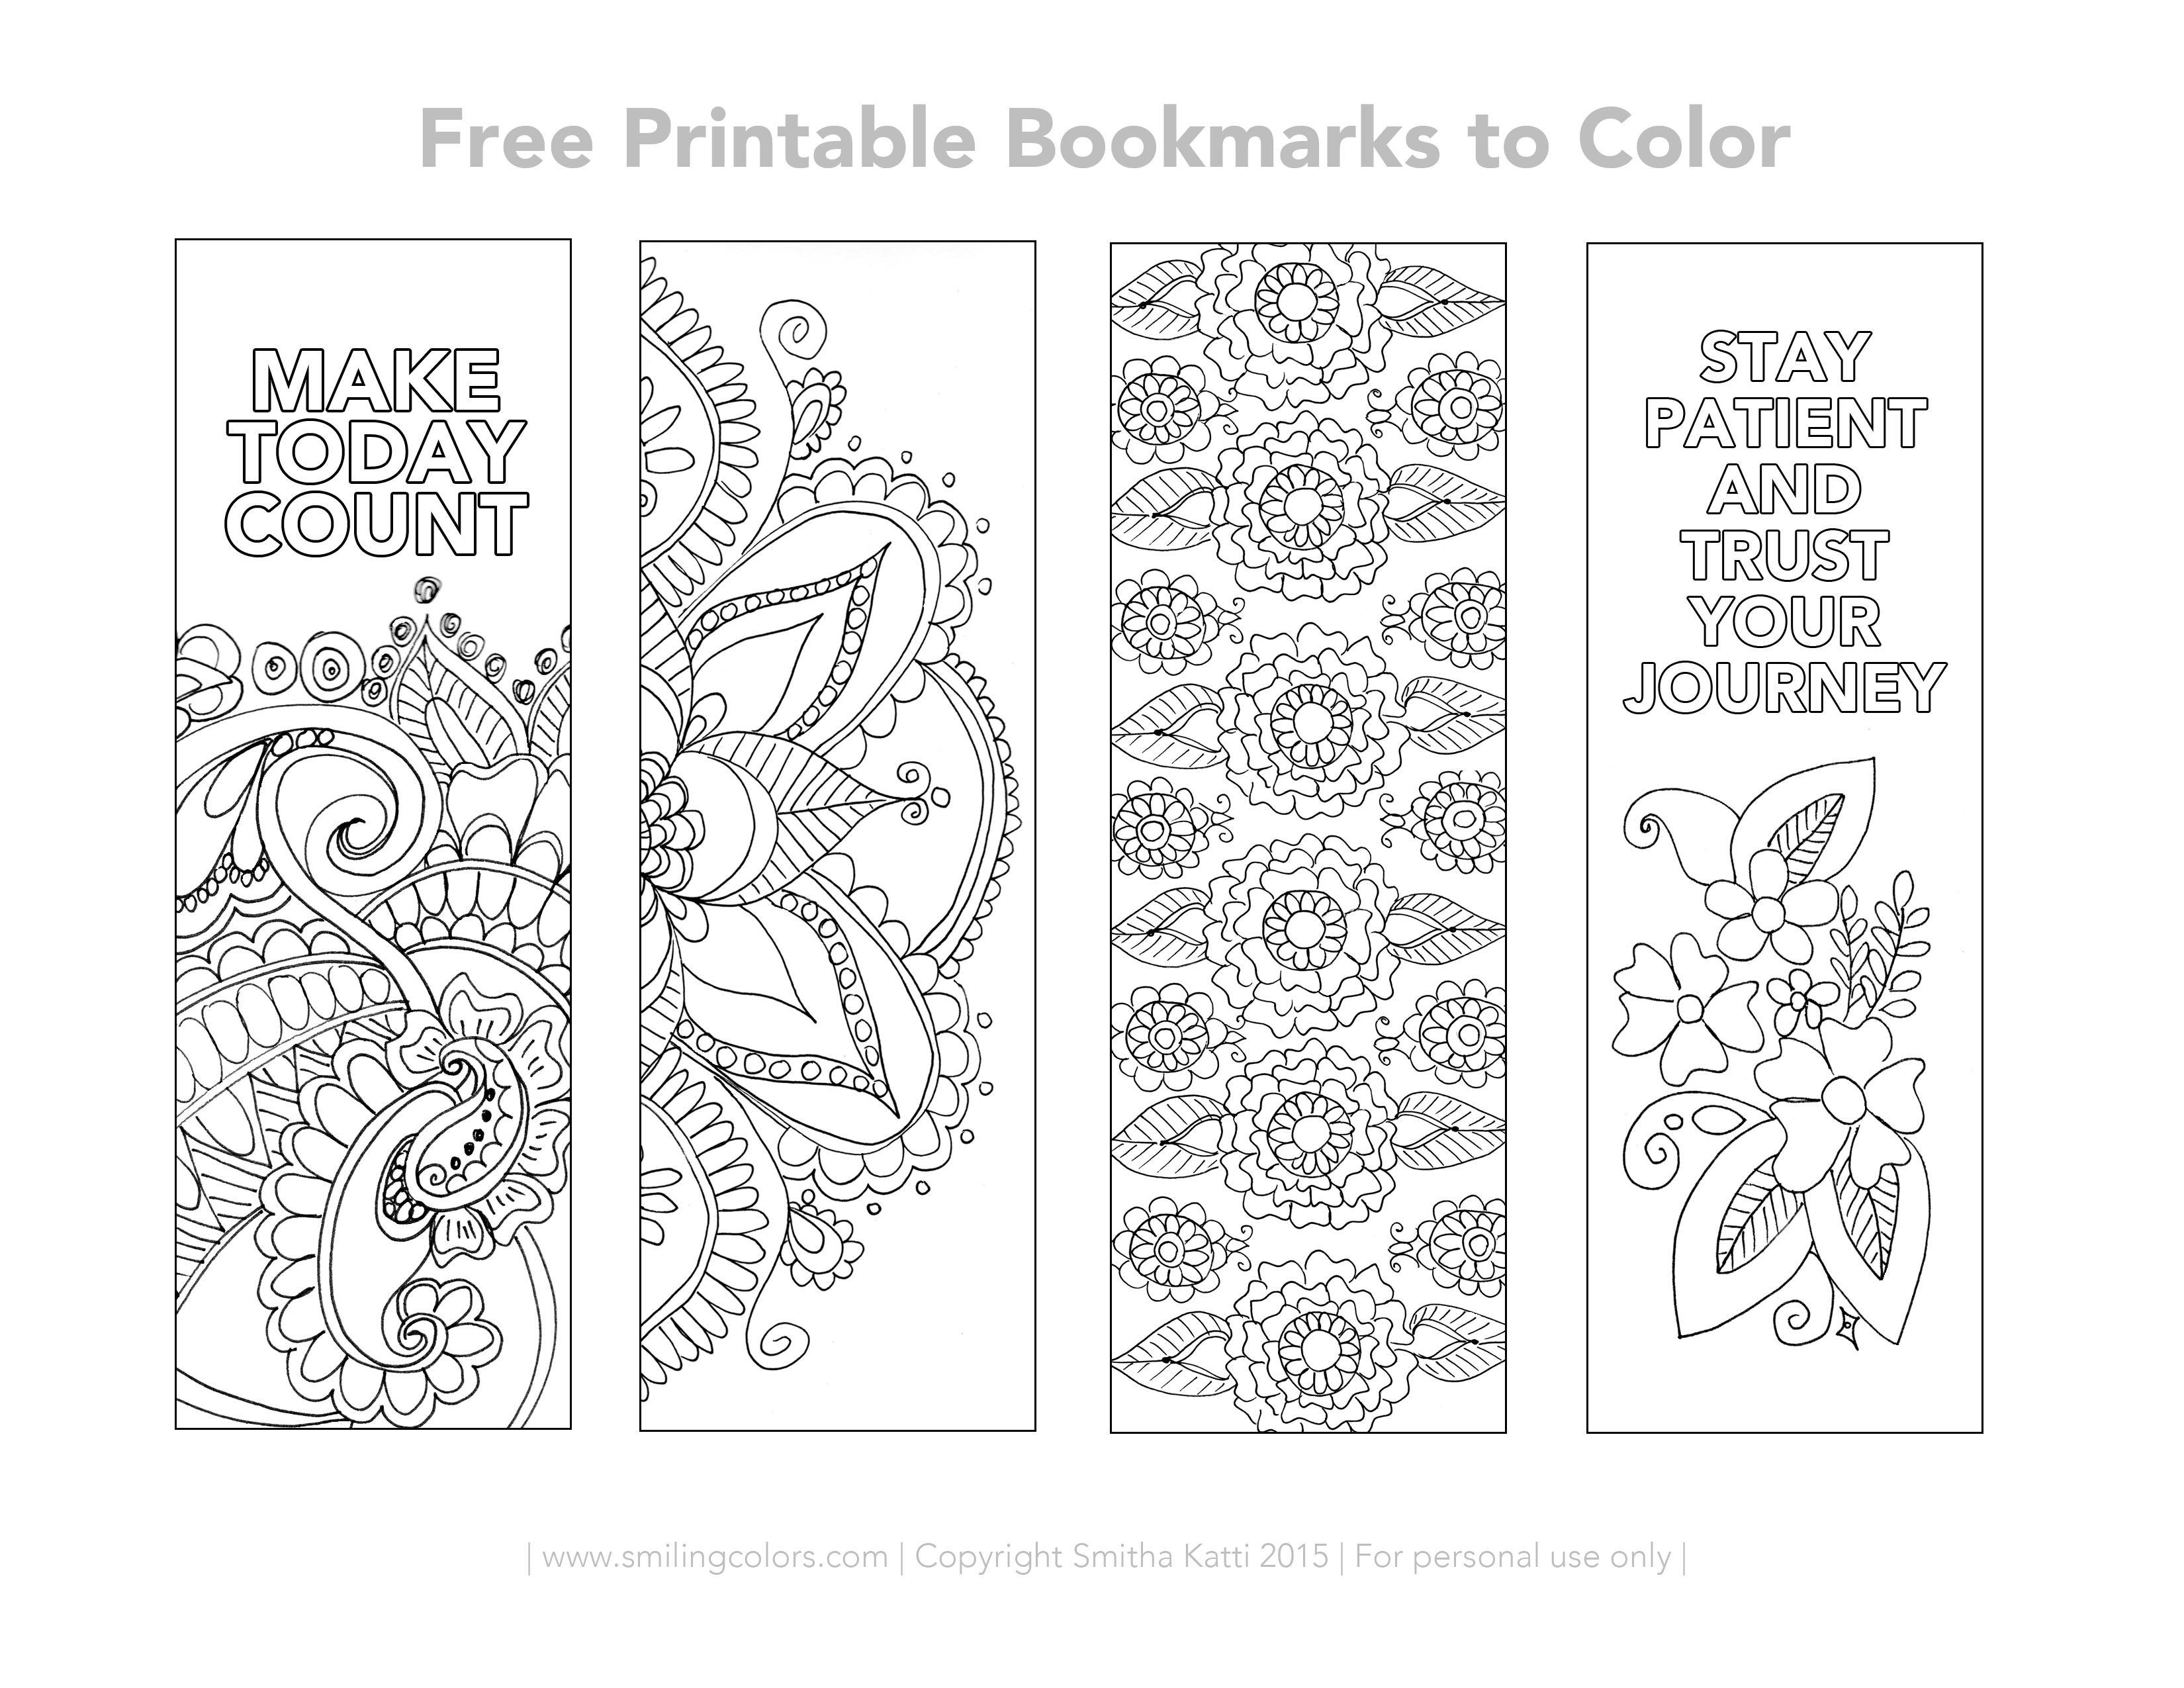 photograph about Printable Bookmarks for Adults named Totally free Printable Bookmarks in direction of coloration - Smitha Katti